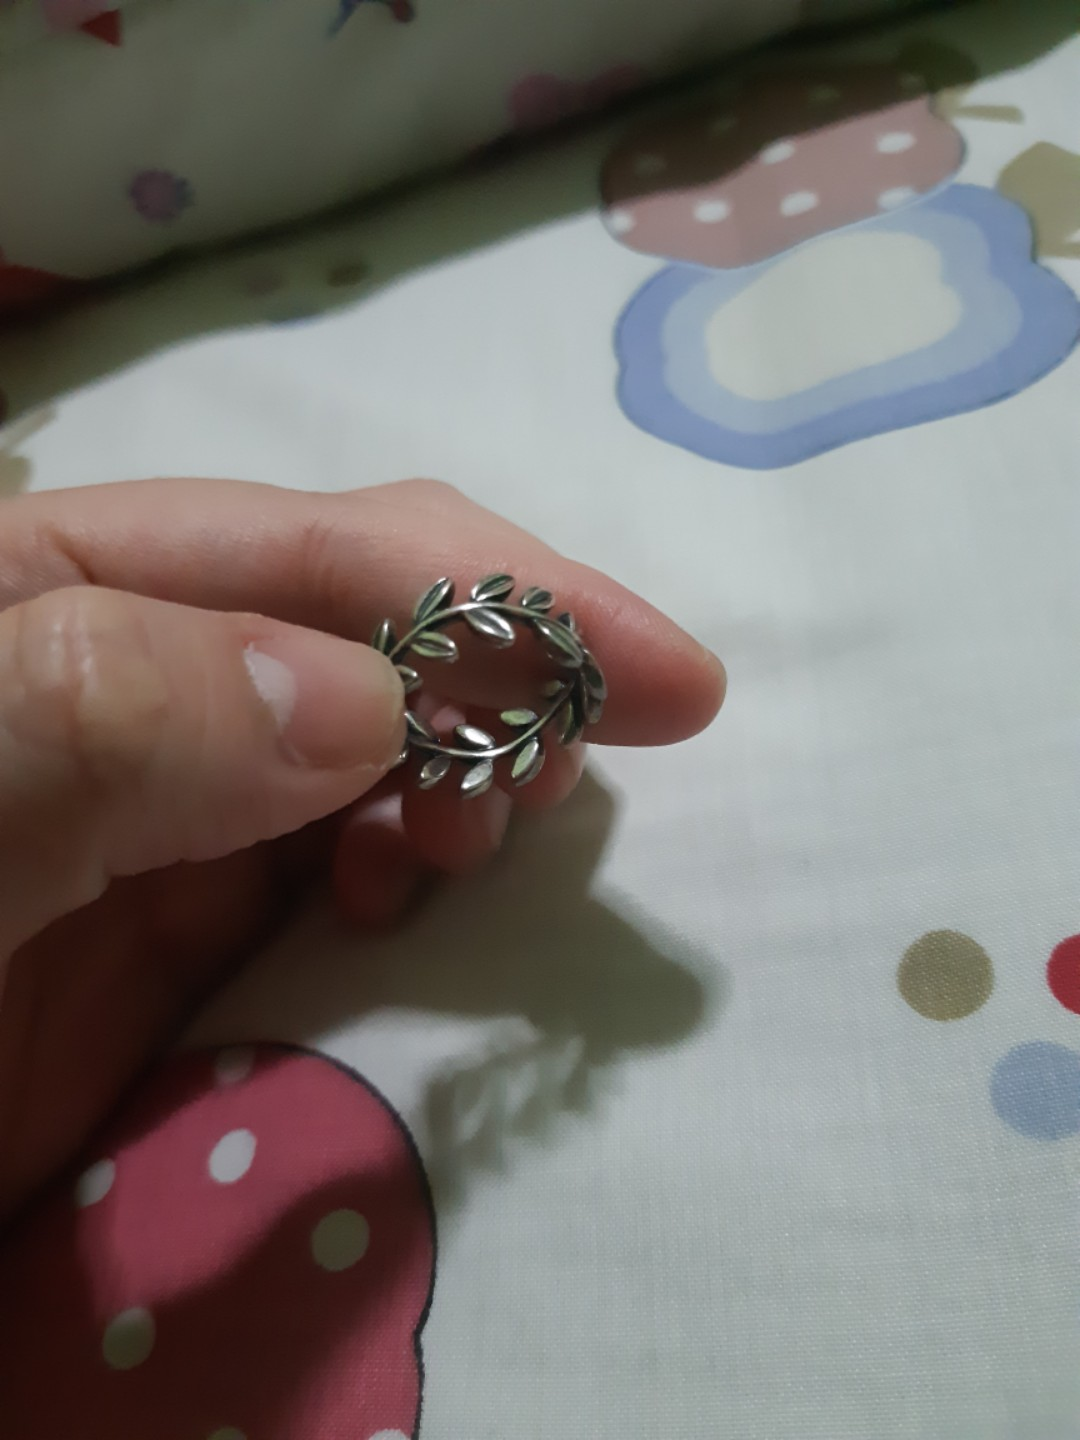 093c4a8ad Pandora laurel wreath ring, Women's Fashion, Accessories, Others on ...